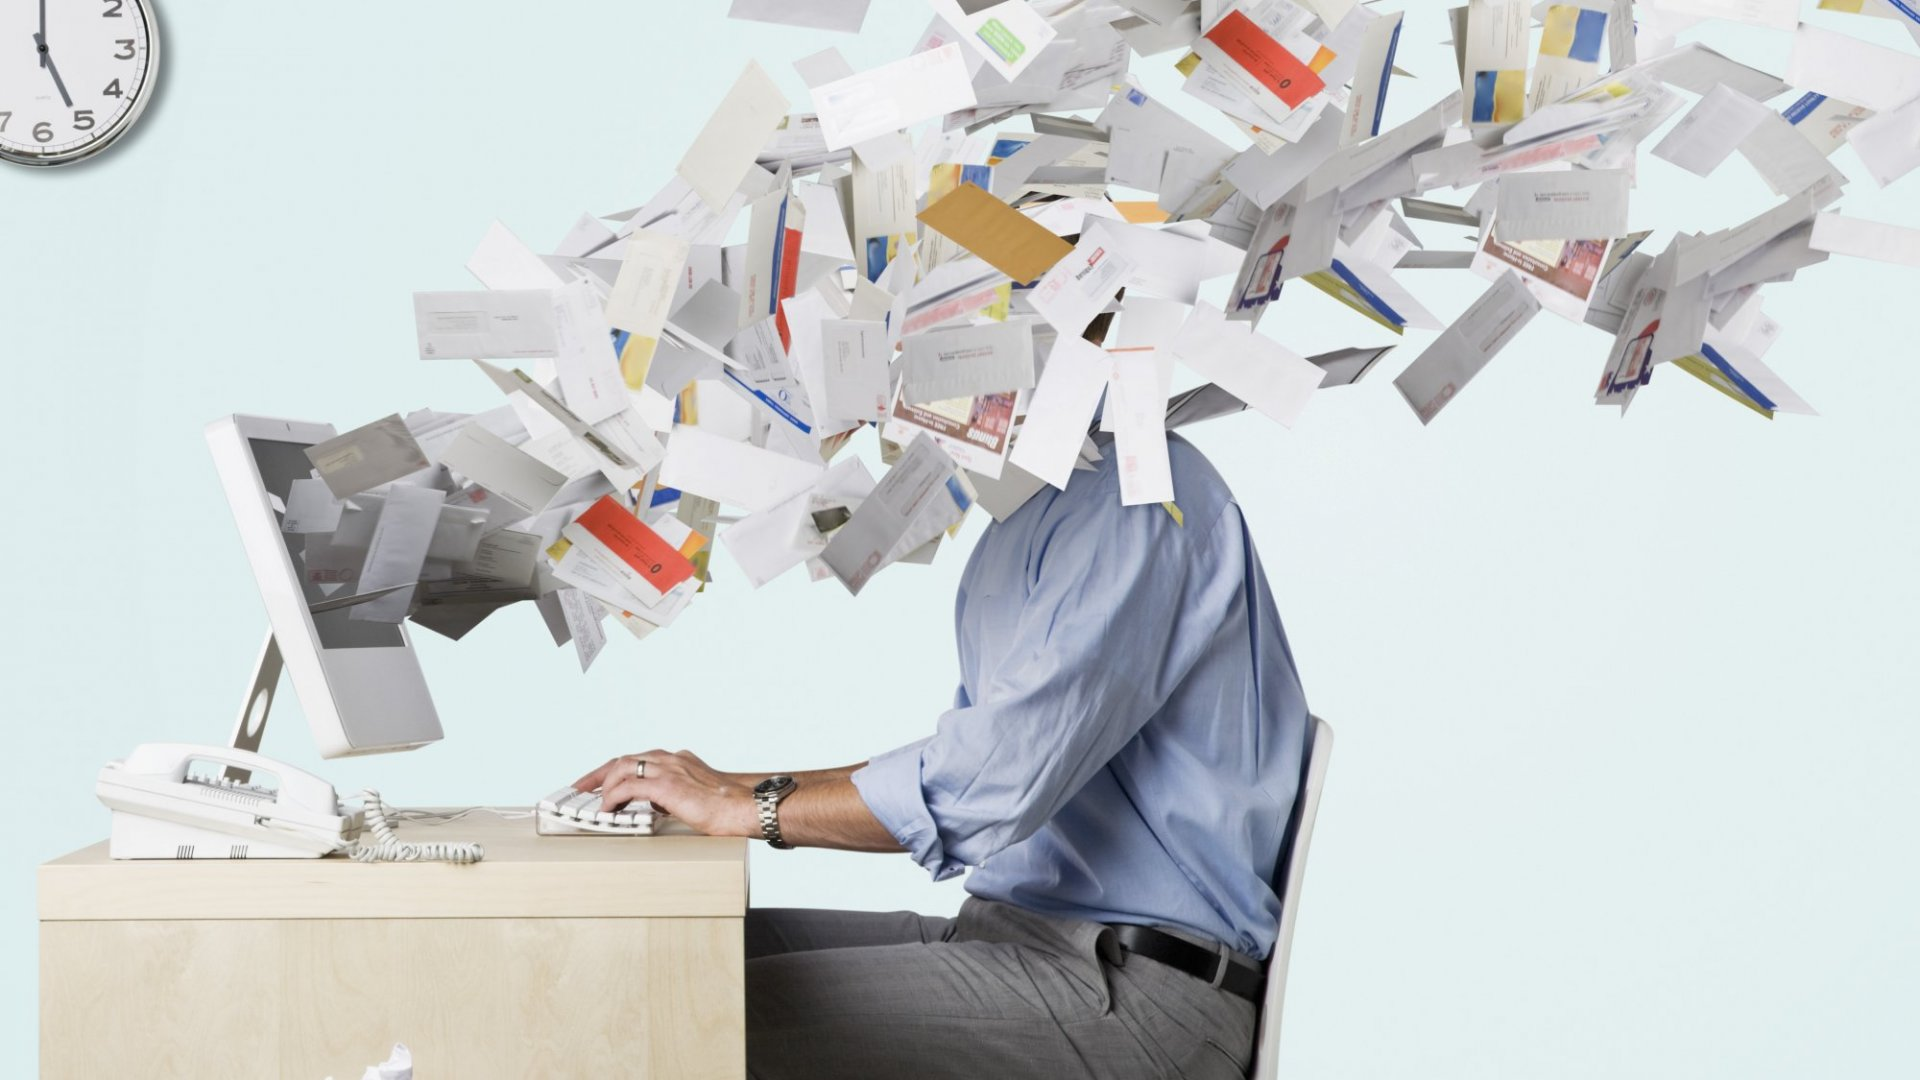 You Spend 20 Hours a Week on Email. Here's How to Stop